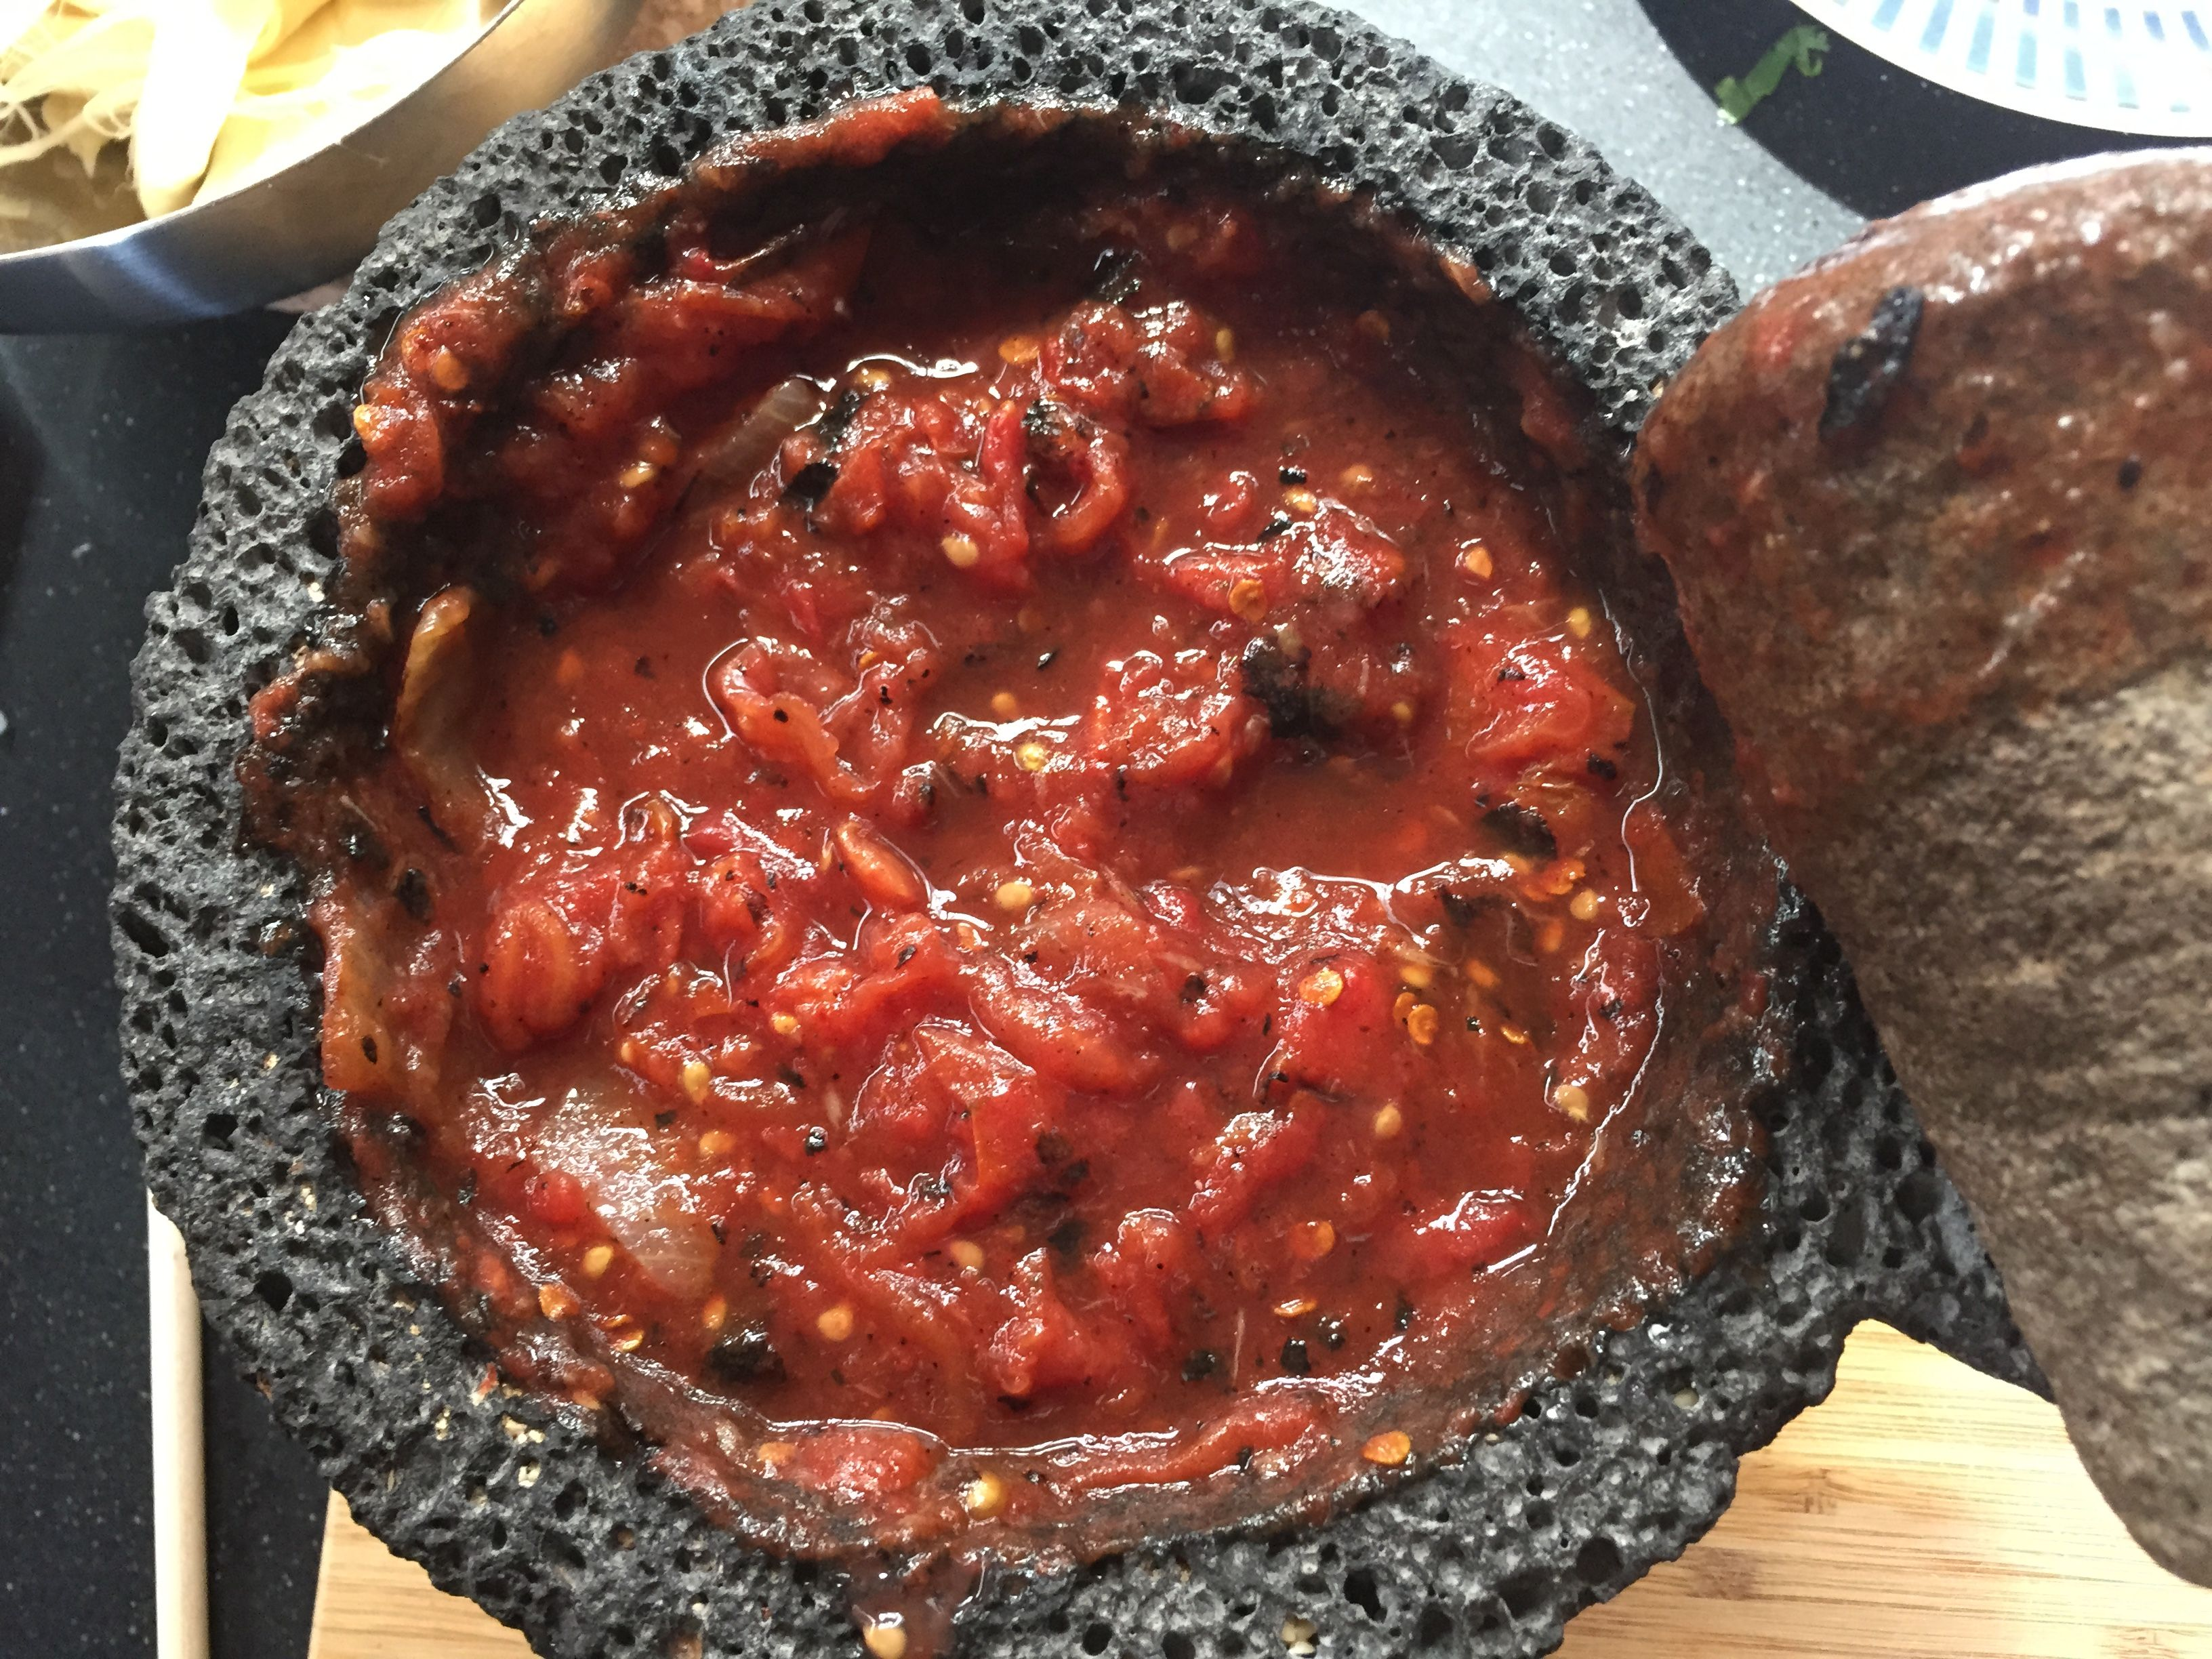 Taste Of Mexico City Smokey Fire Roasted Tomato Salsa Cooking Roasted Tomatoes Travel Food